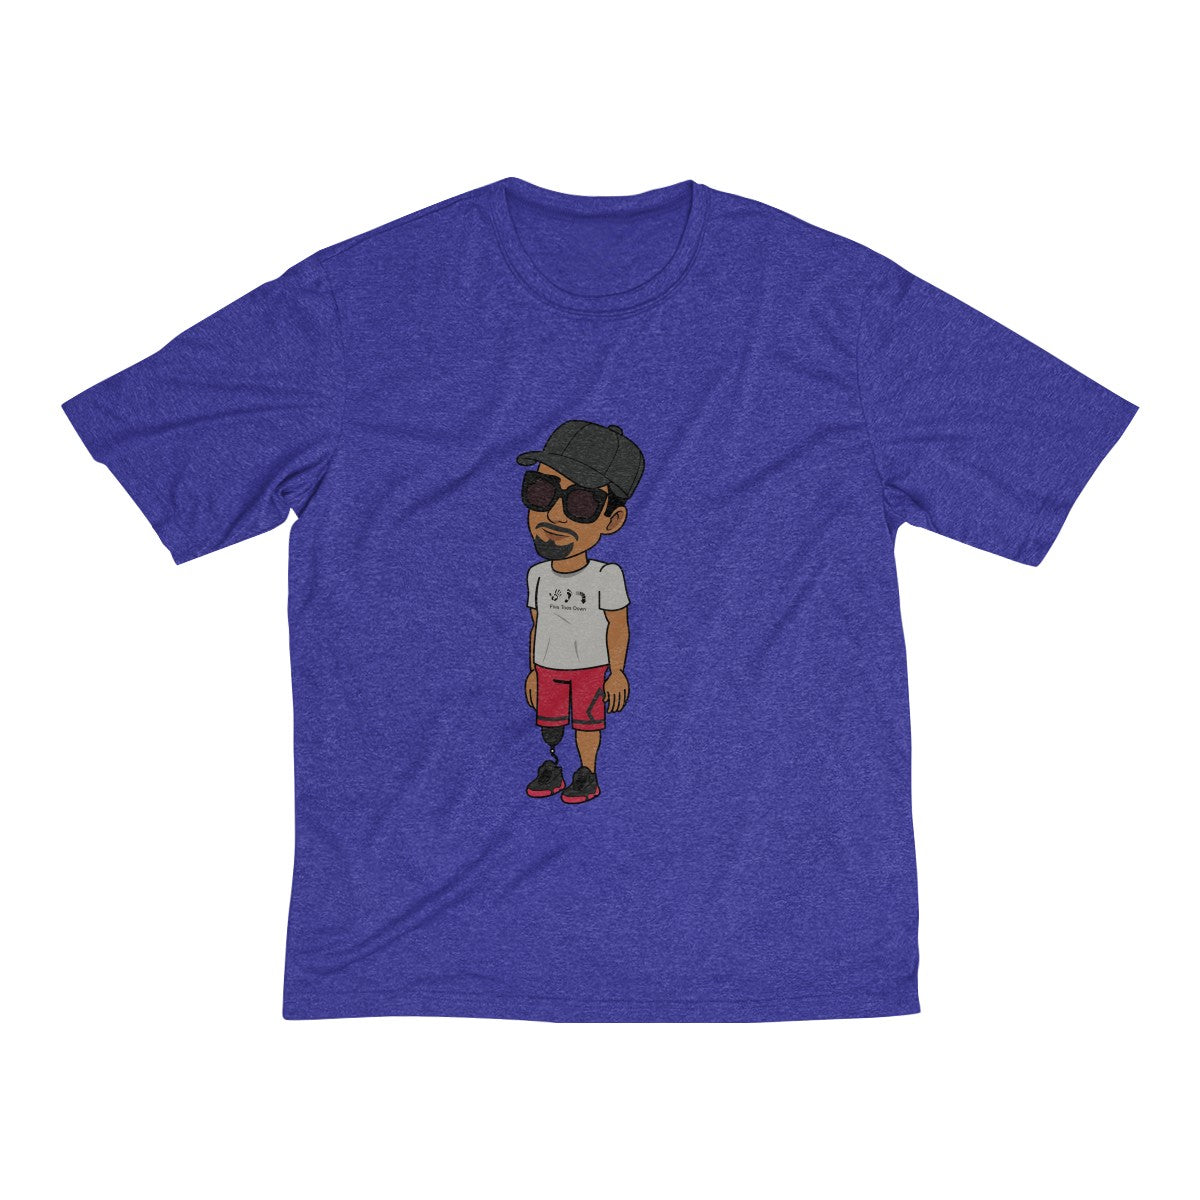 Five Toes Down Henry Dri-Fit Tee